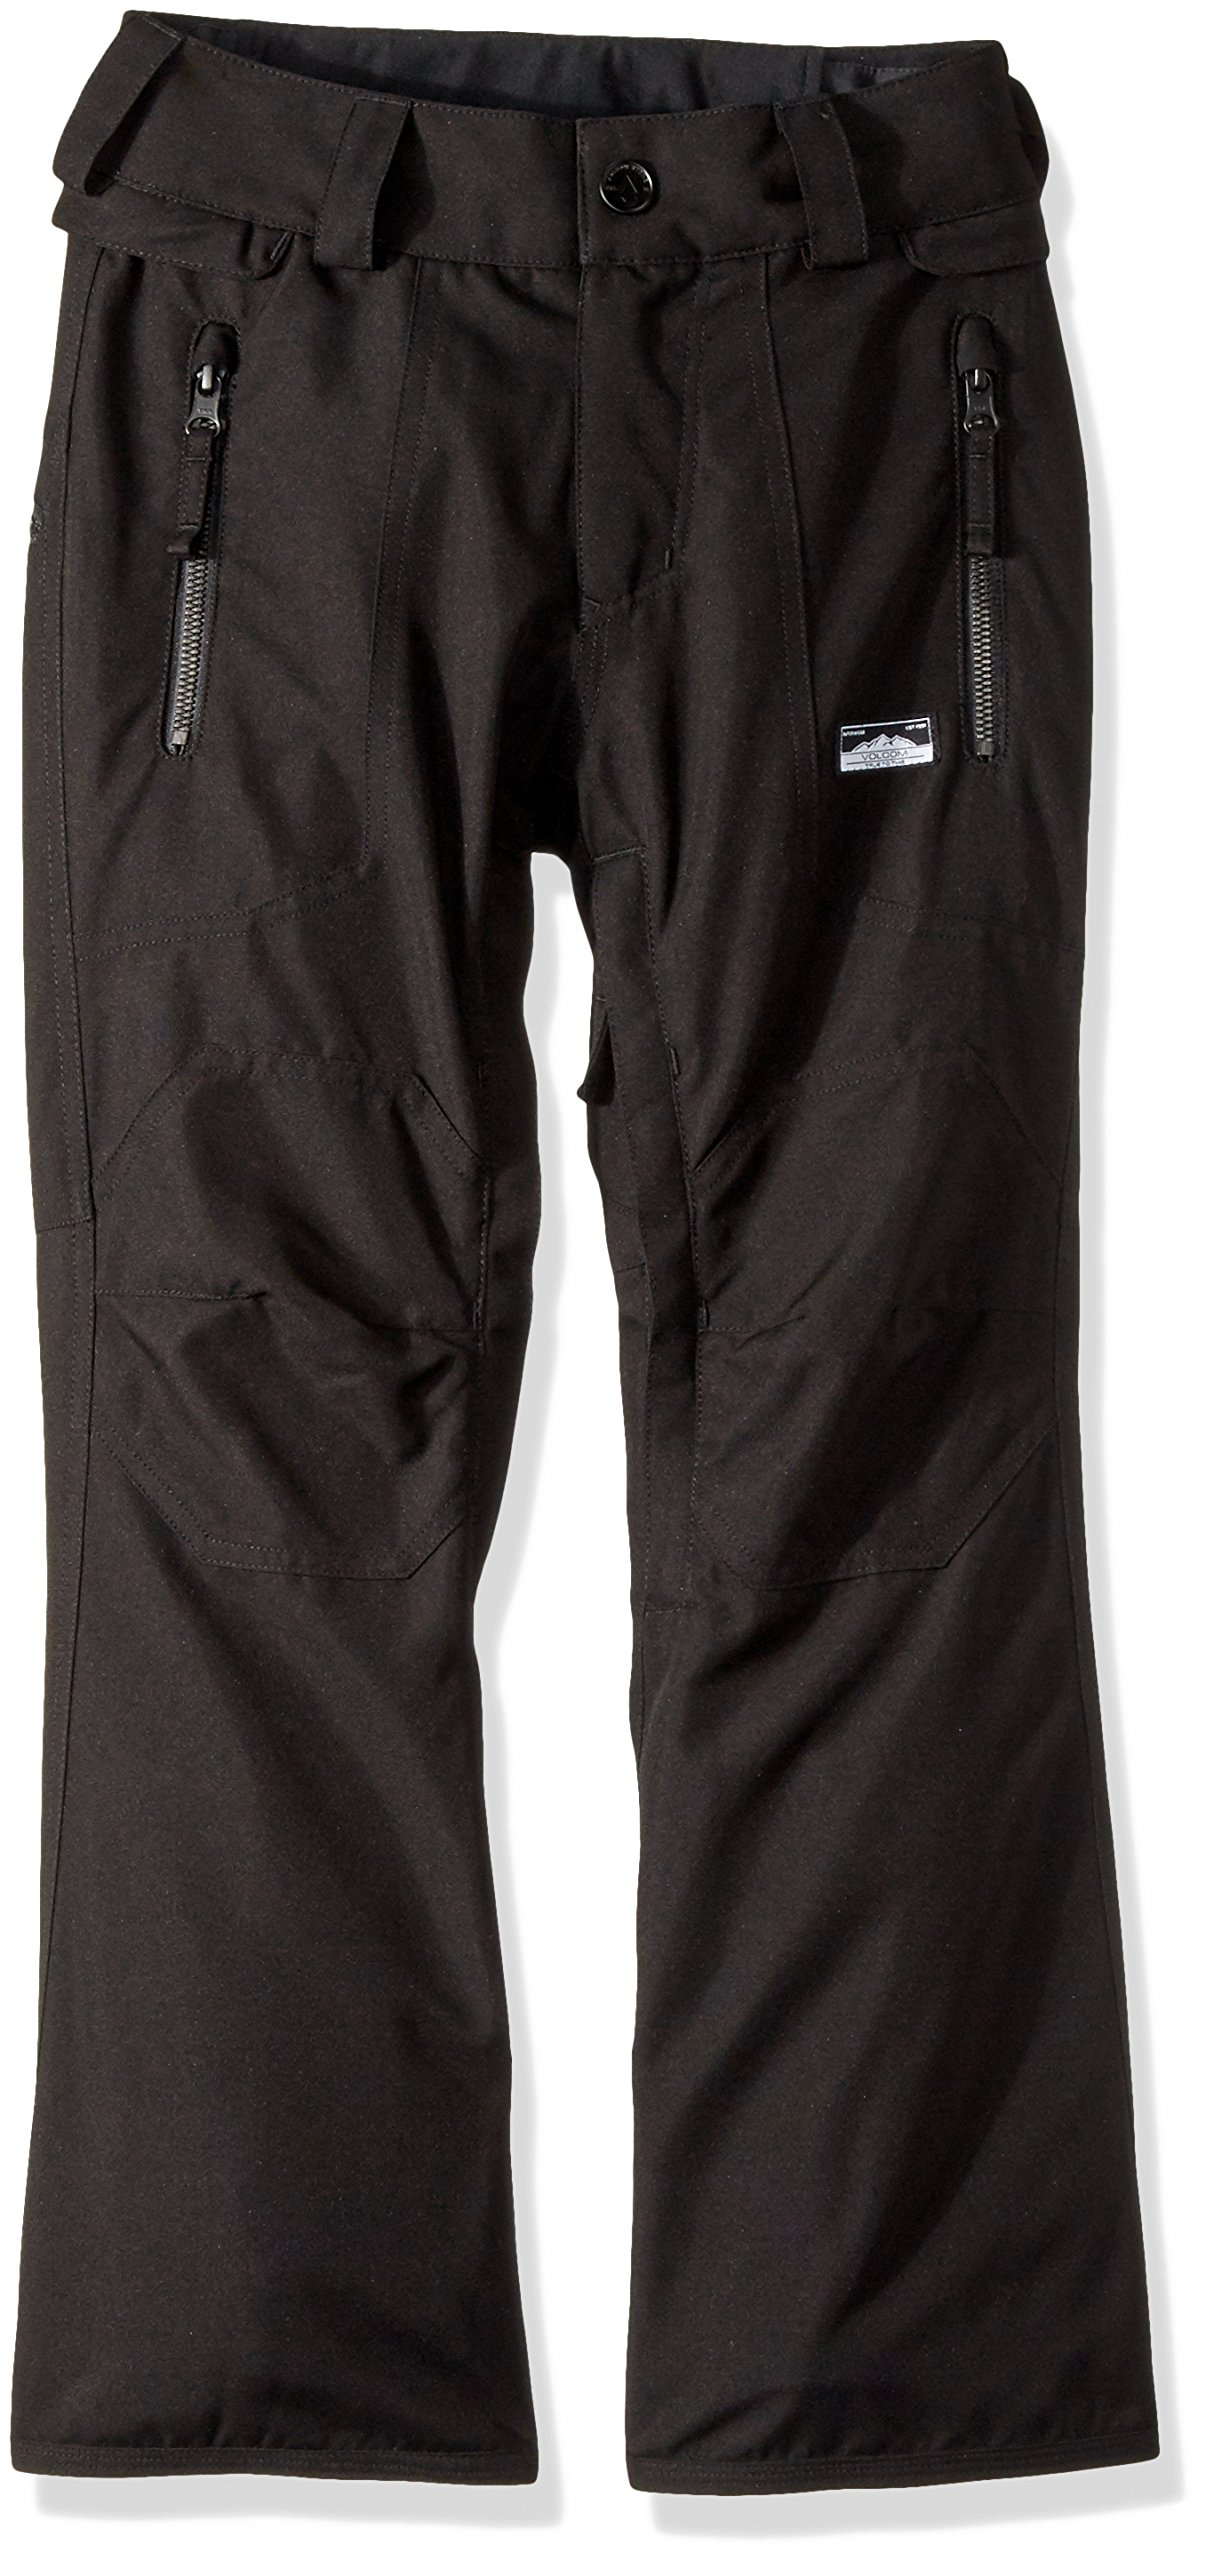 Volcom Boys' Big Datura Pant, Black, XL by Volcom (Image #1)